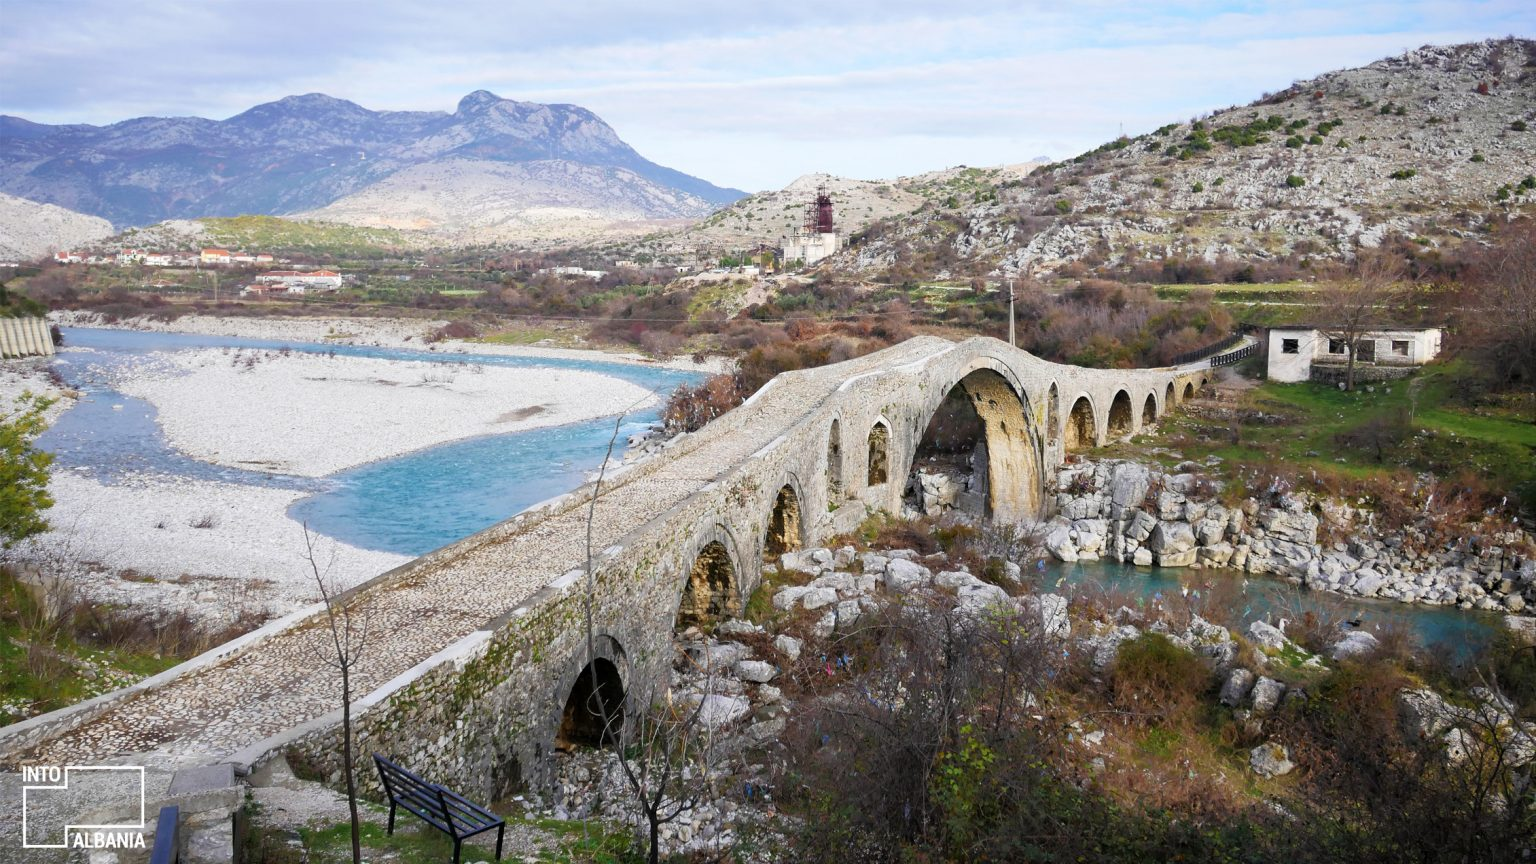 The Mesi Bridge, Shkodra by IntoAlbania